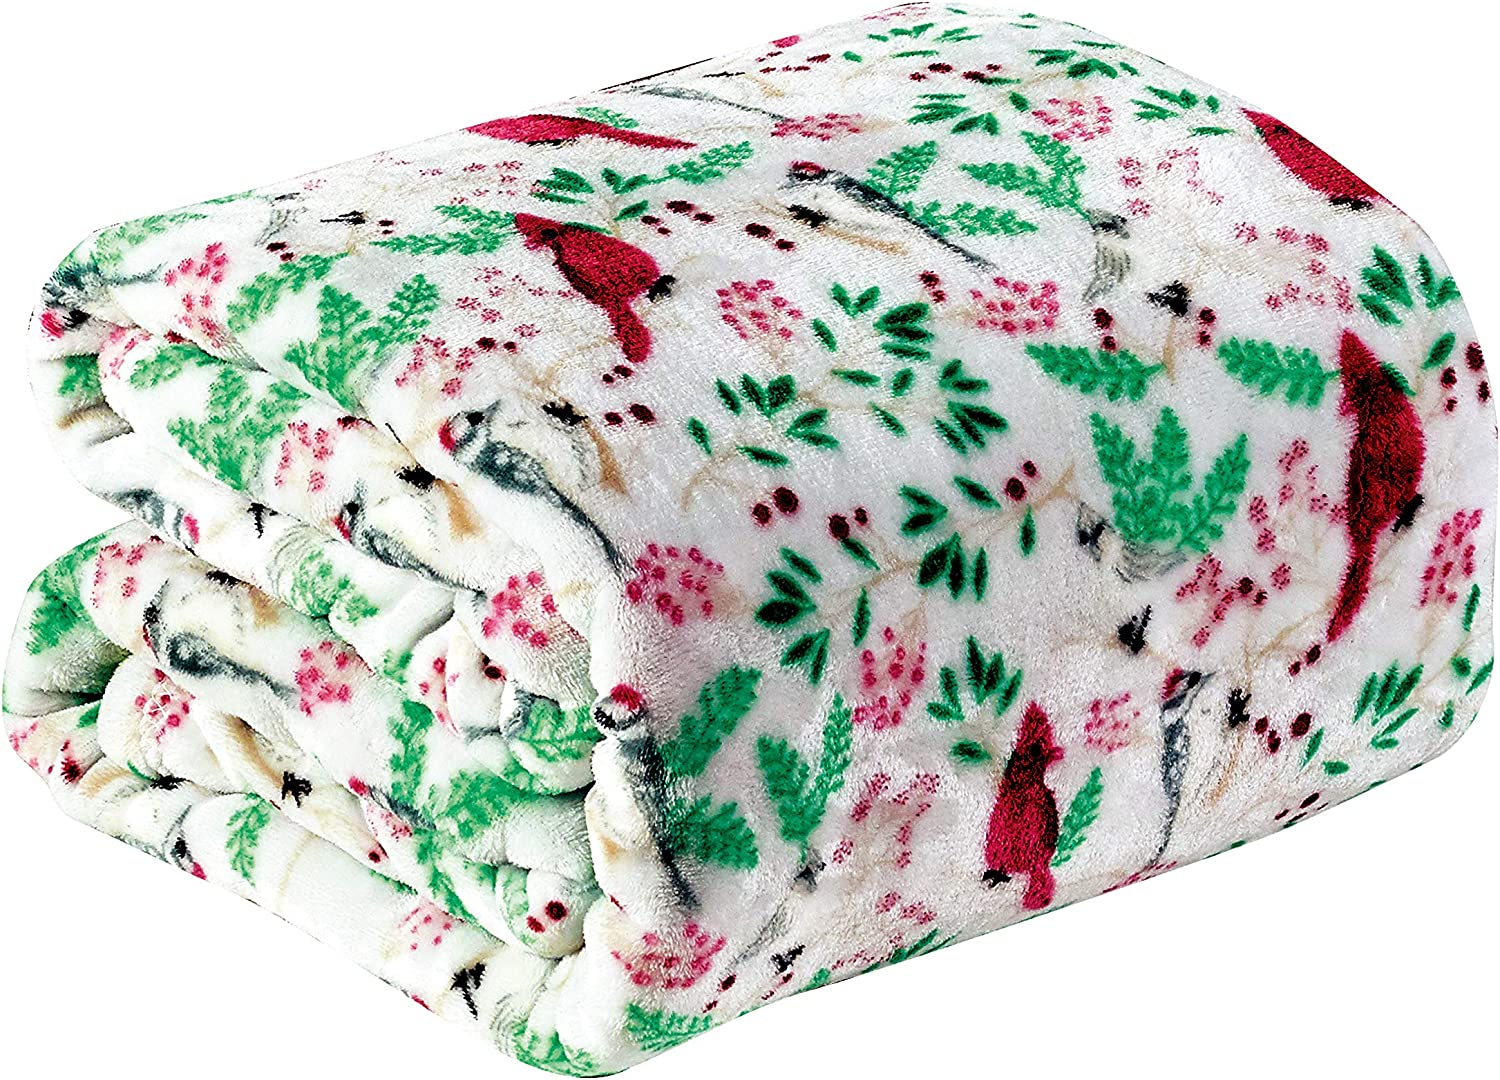 """Décor&More Santa's Little Helper Collection Festive and Cuddly Holiday Microplush Throw Blanket (50"""" x 60"""") - Cardinals"""